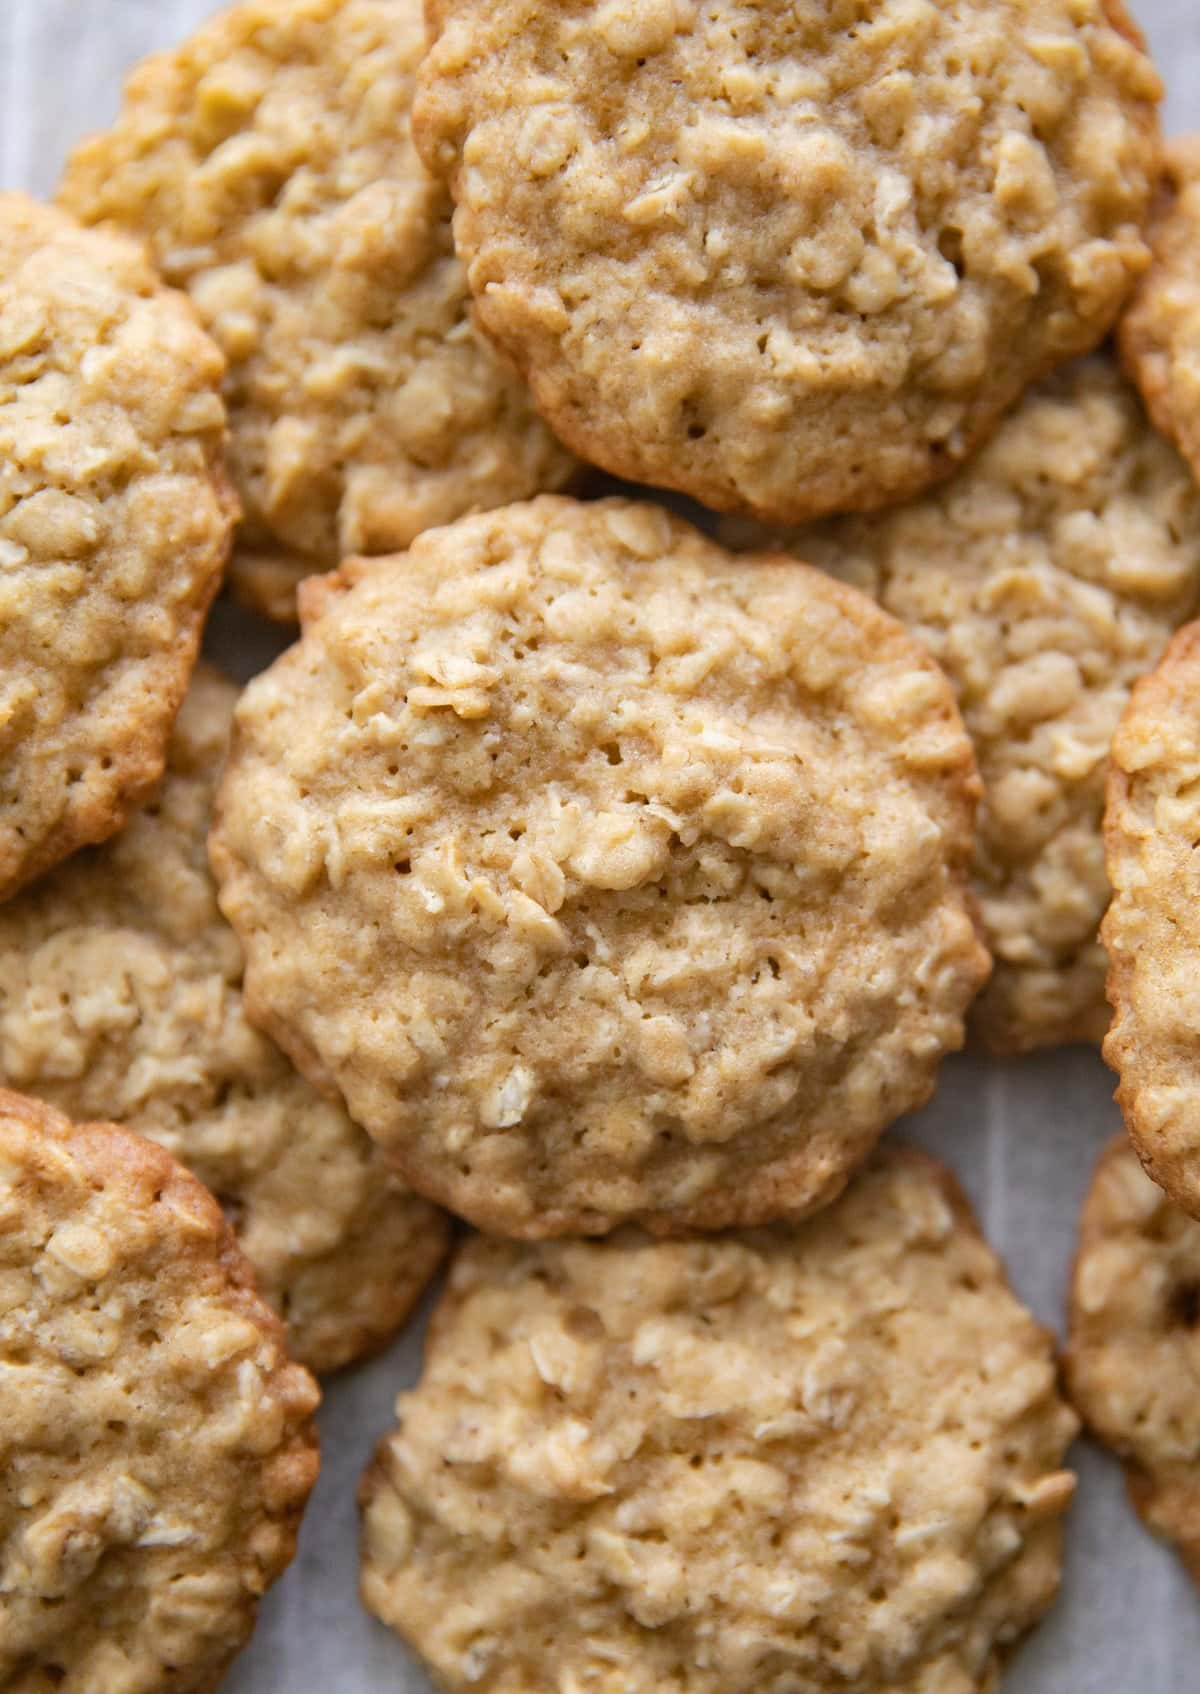 Oatmeal biscuits baked on a cooking rack